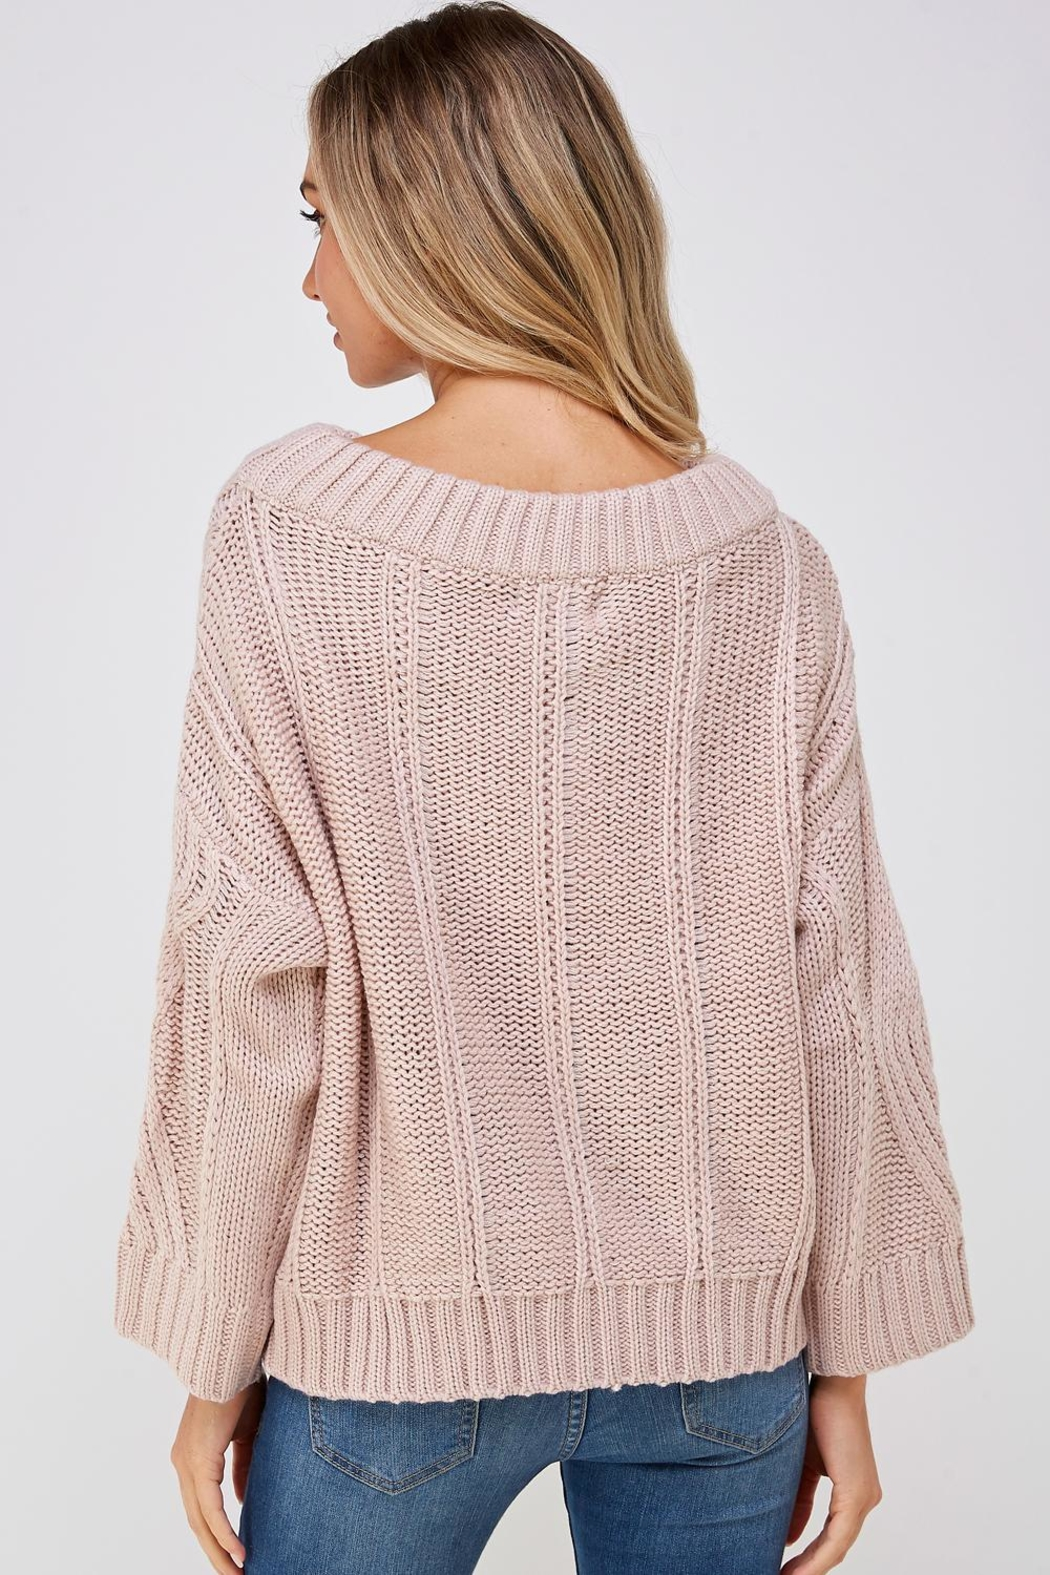 AAKAA Cable Knit Sweater - Back Cropped Image